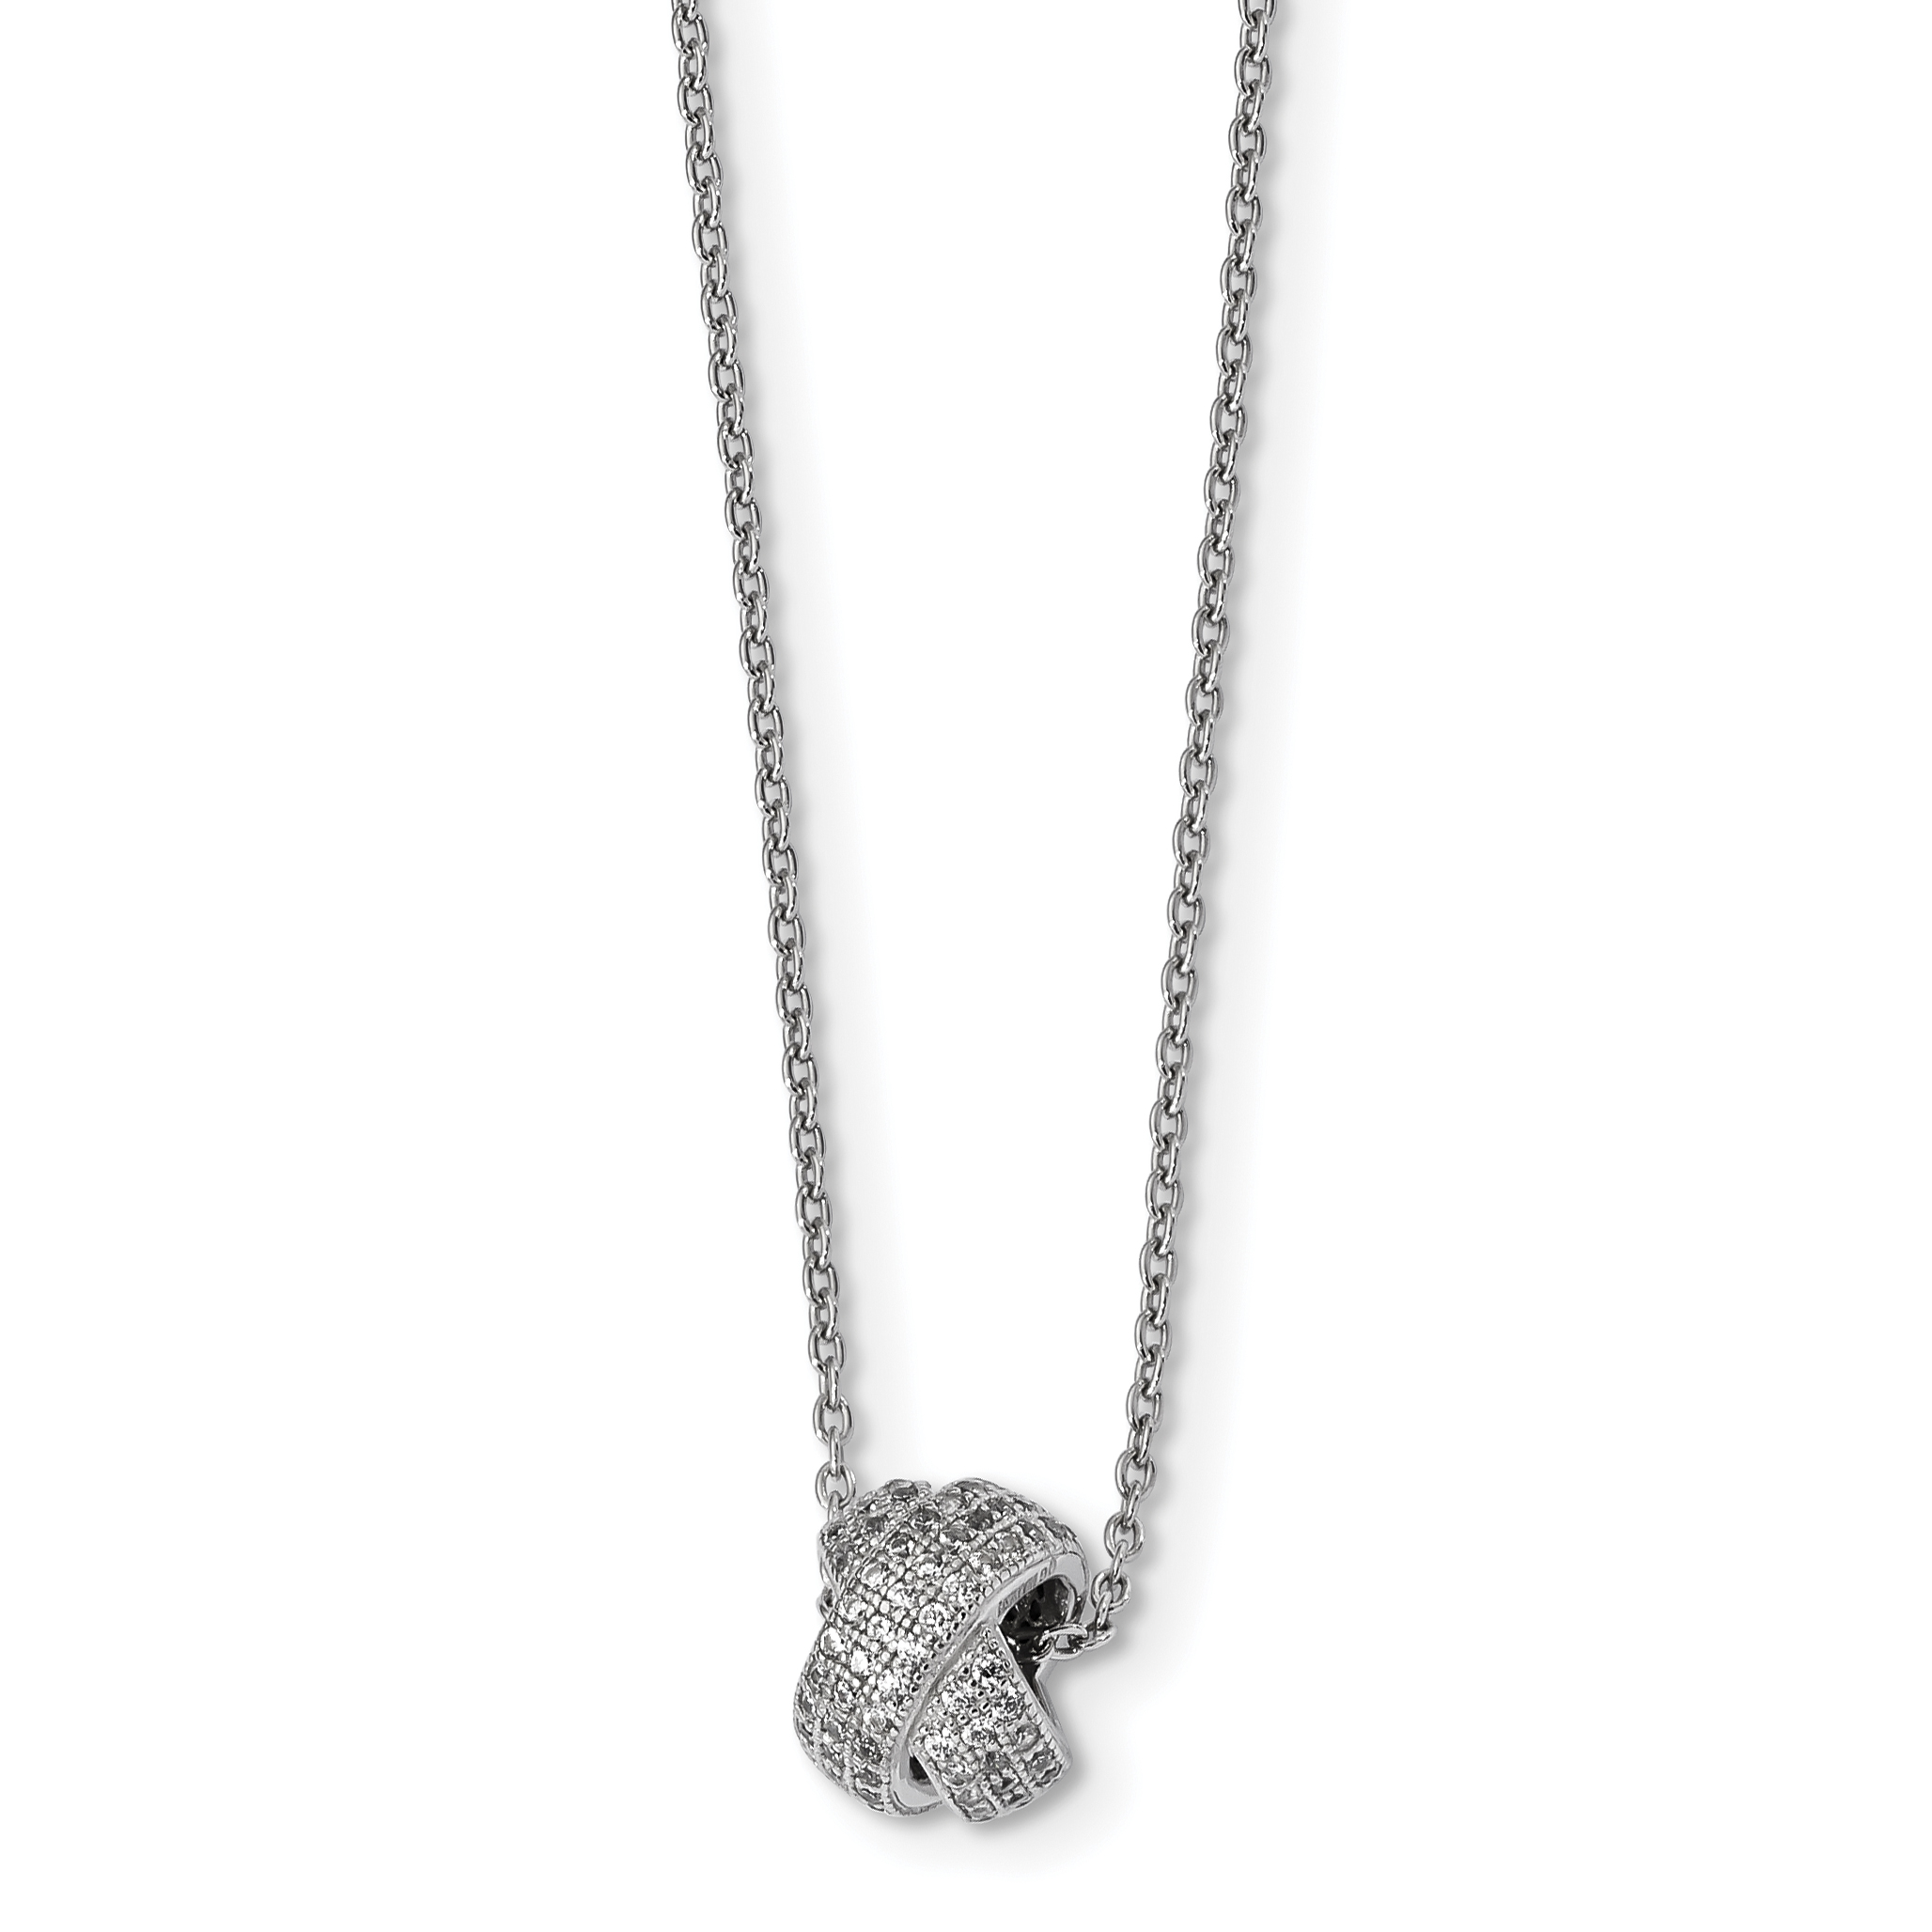 925 Sterling Silver Cubic Zirconia Cz Chain Necklace Pendant Charm Fine Jewelry Gifts For Women For Her